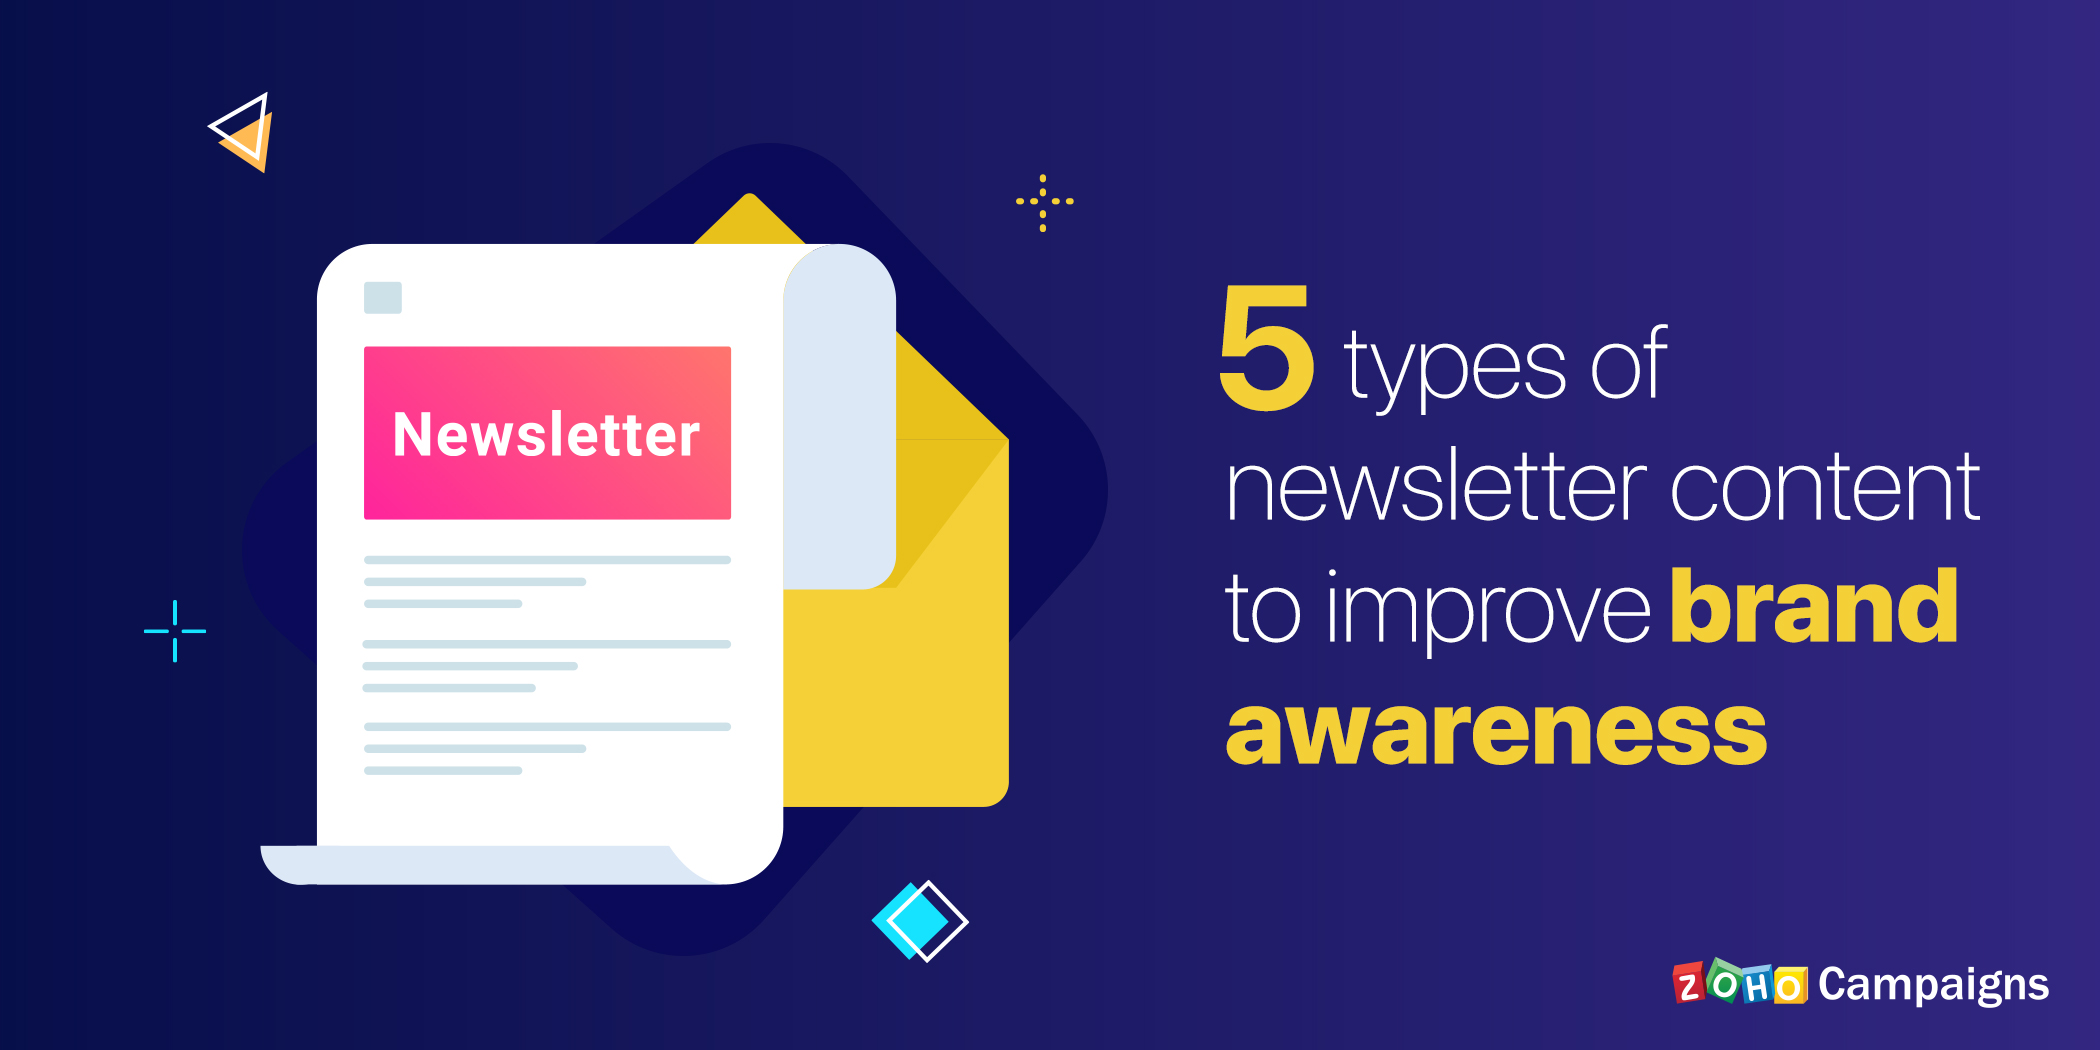 5 types of newsletter content to improve brand awareness